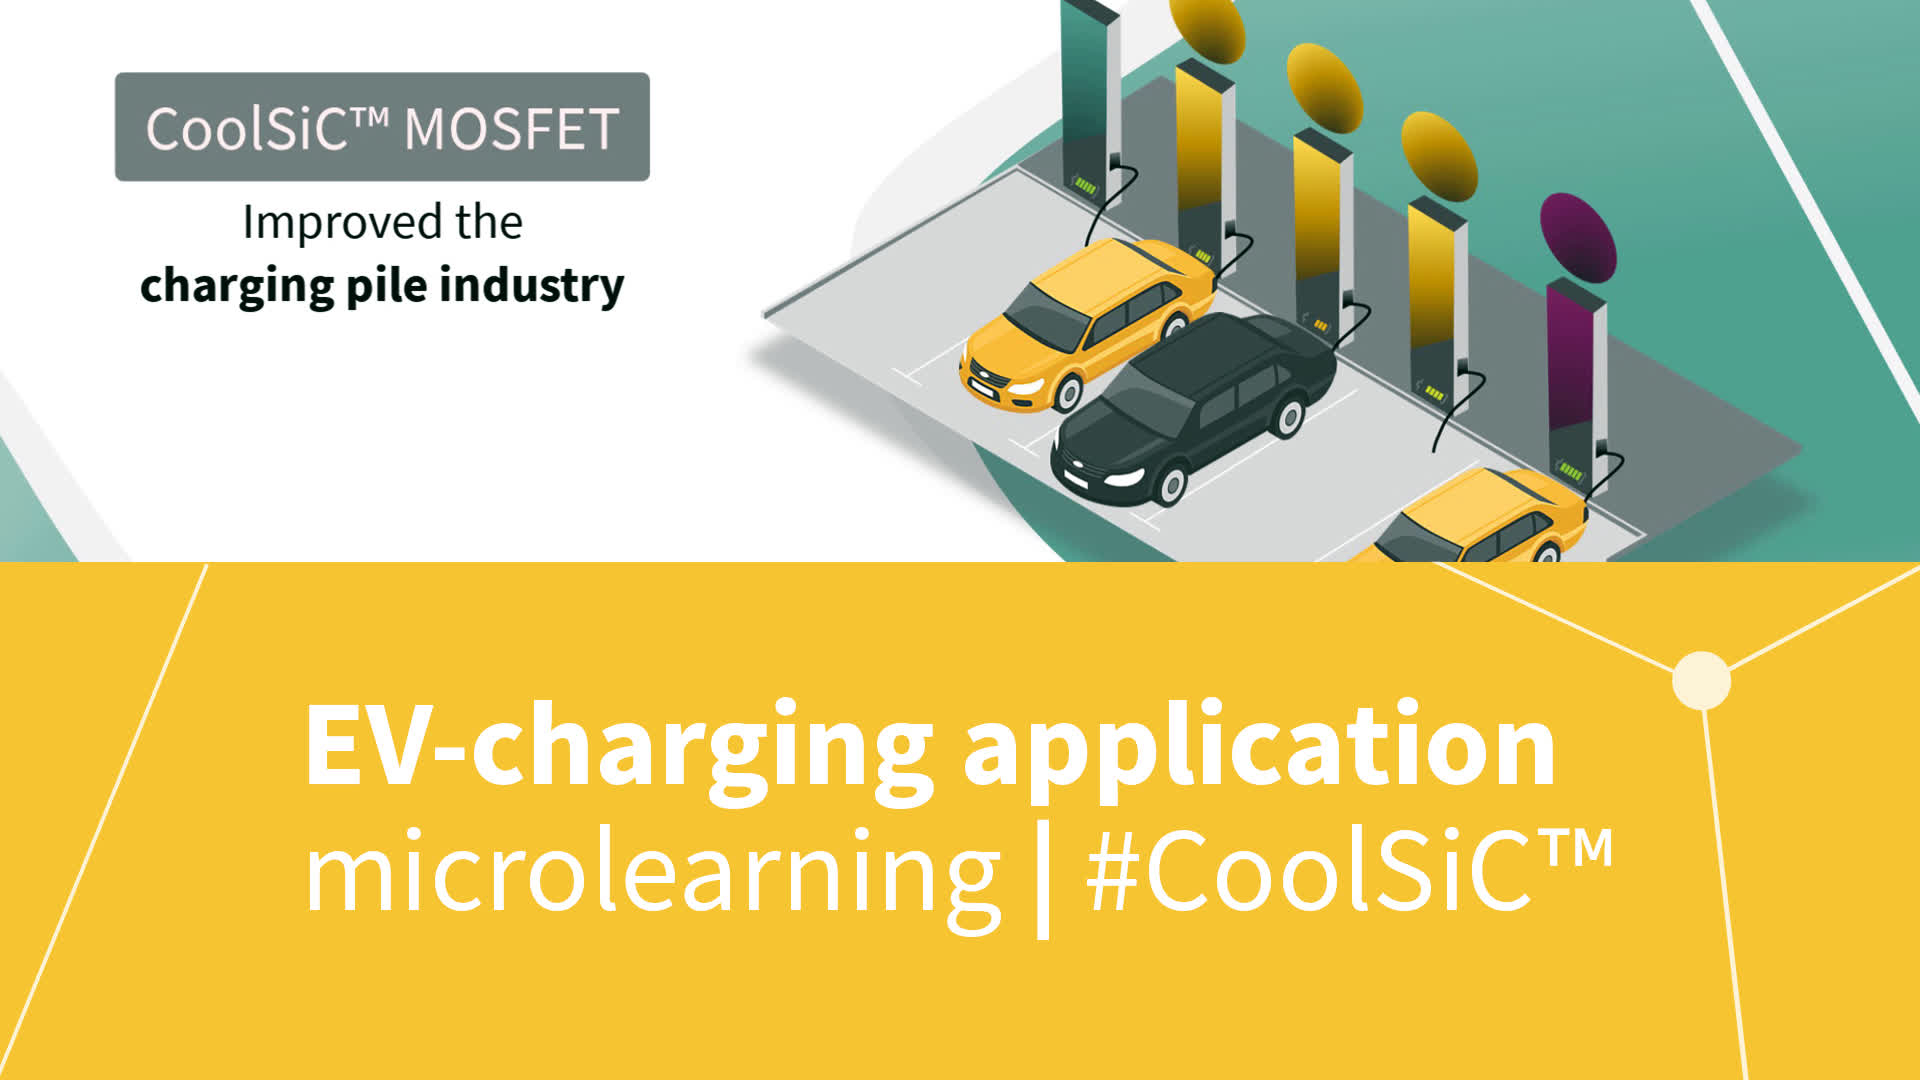 CoolSiC™ MOSFET in an EV charging application